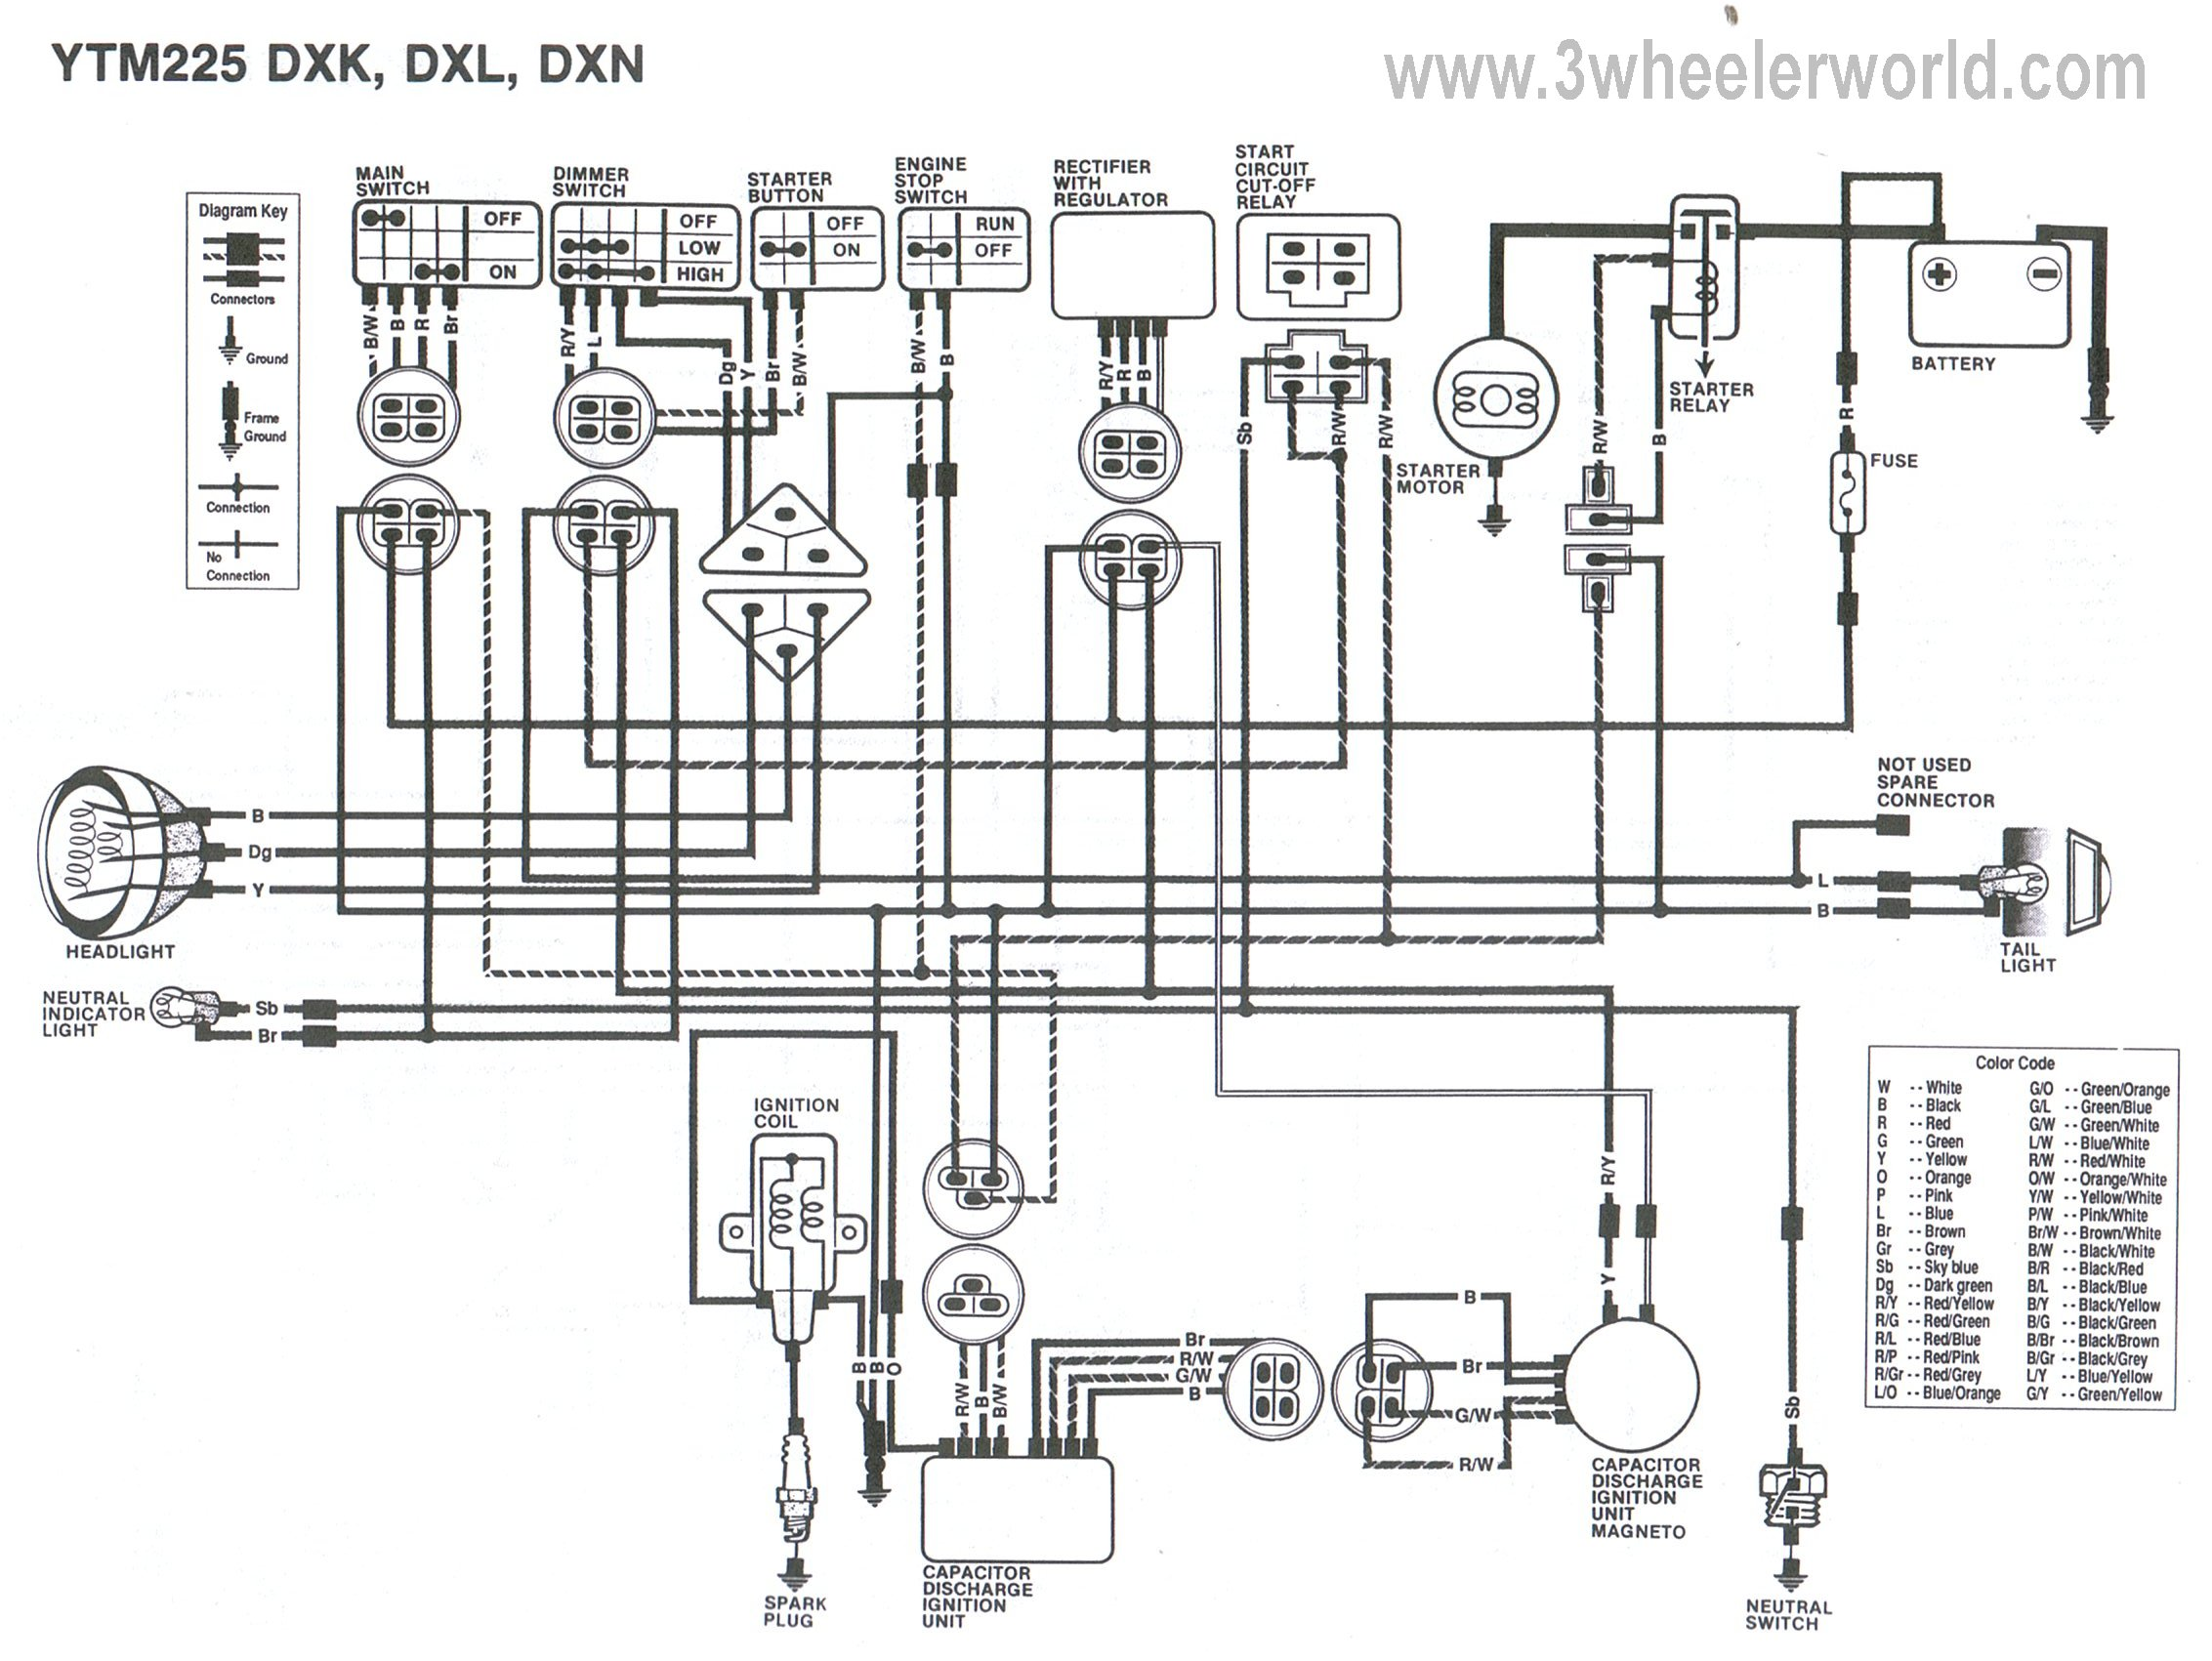 YTM225DXKDXLDXN yamaha ttr 125 wiring diagram yamaha yz125 \u2022 free wiring diagrams yamaha ttr 225 wiring diagram at nearapp.co